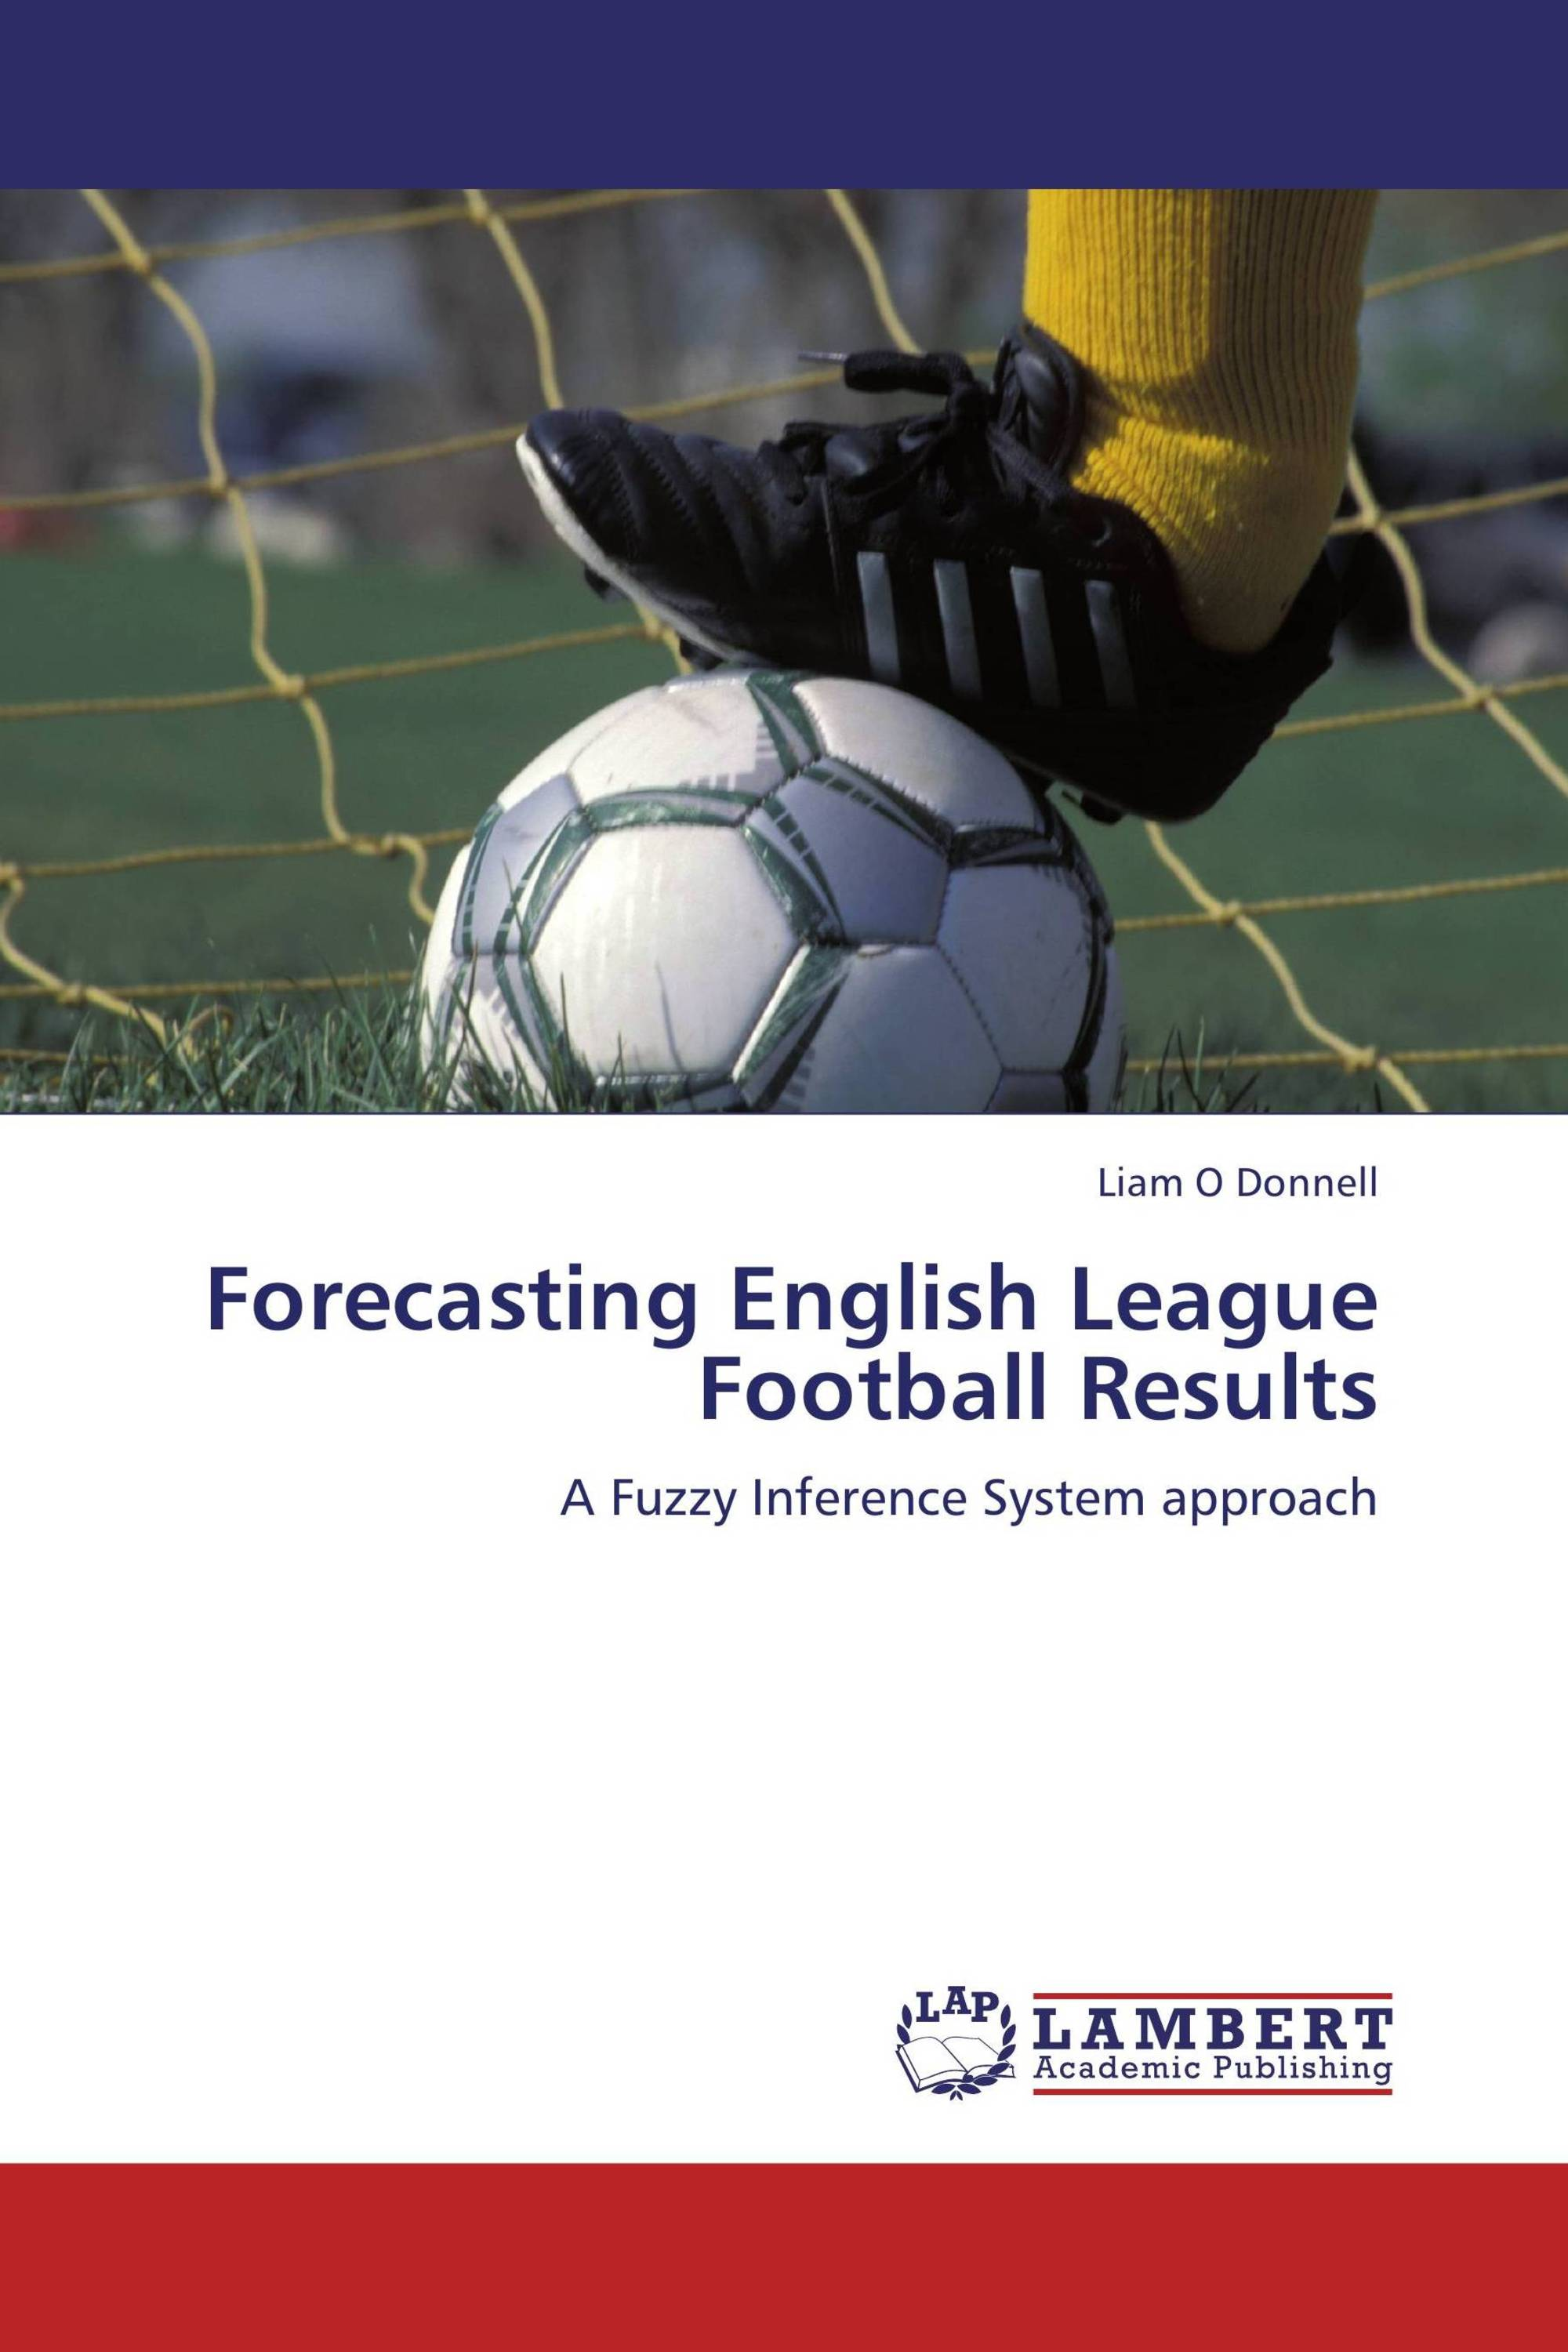 Forecasting English League Football Results